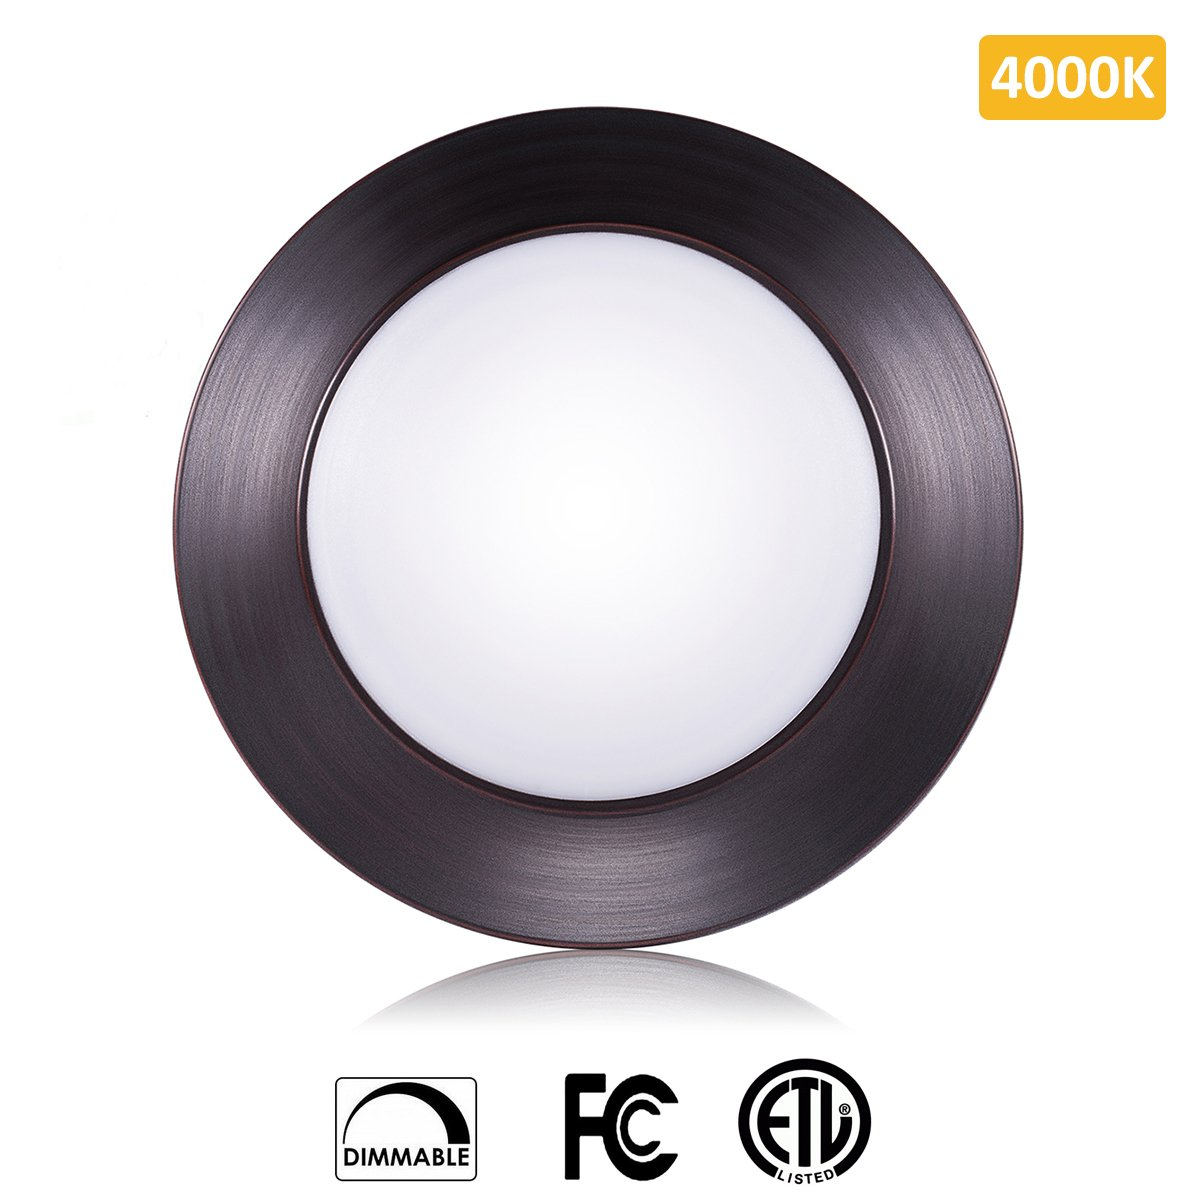 SOLLA 6 inch Dimmable LED Disk Light Flush Mount Ceiling Fixture with ETL FCC Listed, 750LM, 12W (70W Equiv.), Natural White, 4000K, Bronze Finish, Ultra-Thin, Round LED Light for Home, Hotel, Office by SOLLA